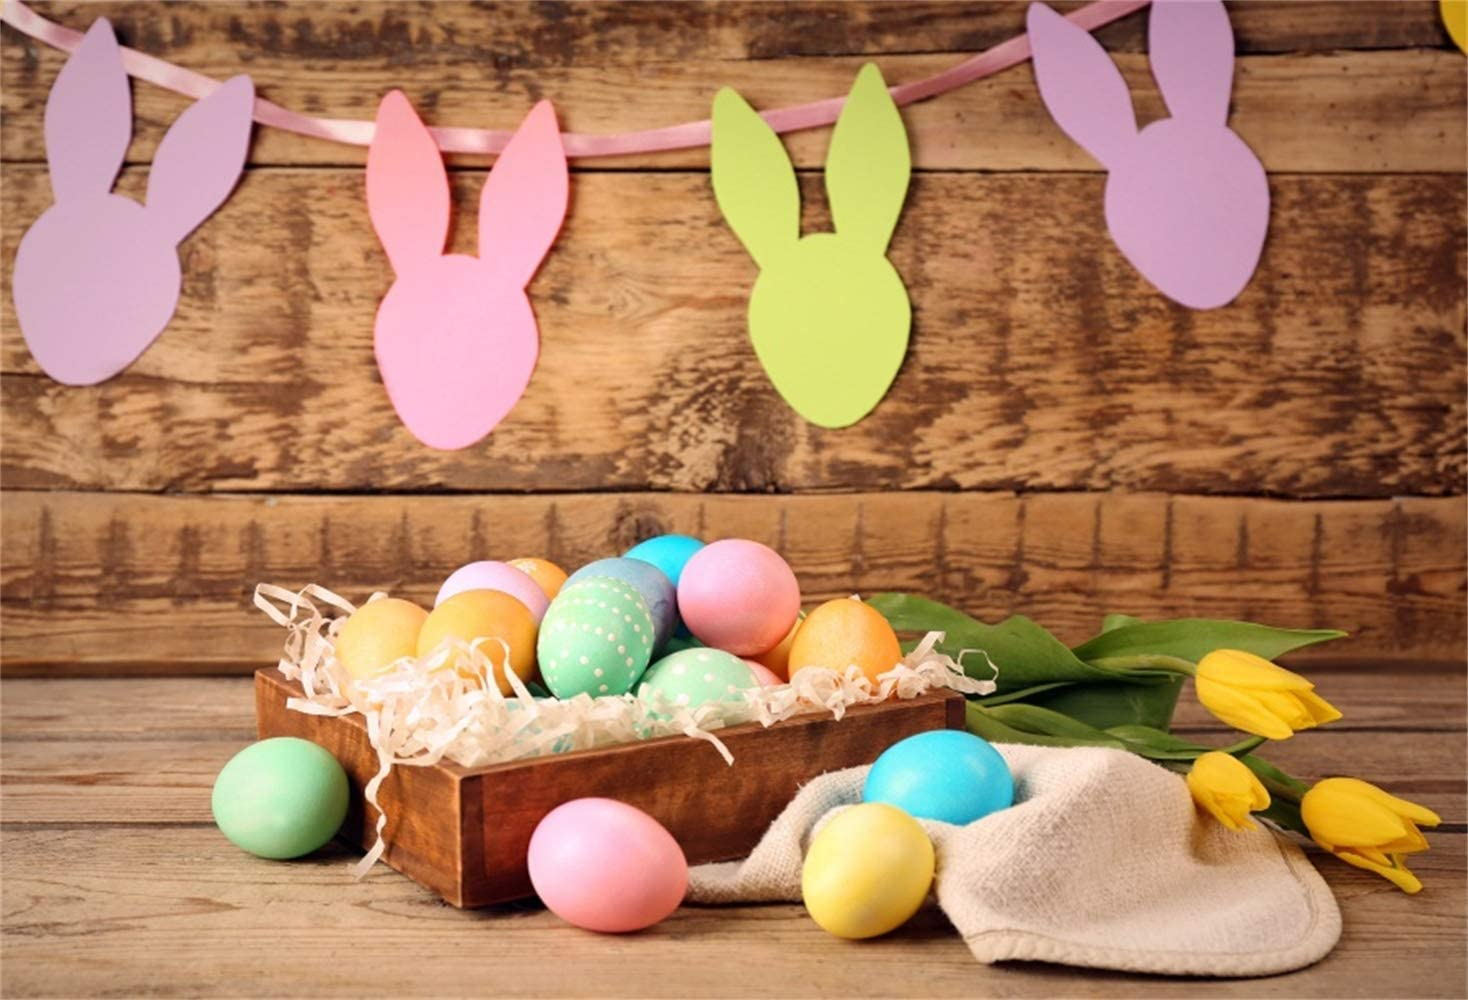 8x6.5ft Easter Theme Backdrop Polyester Colorful Rabbit Paper-Cut Decors Wooden Box Easter Eggs Yellow Tulips Retro Wooden Wall Background Child Baby Adult Shoot Easter Egg Hunt Activities Video